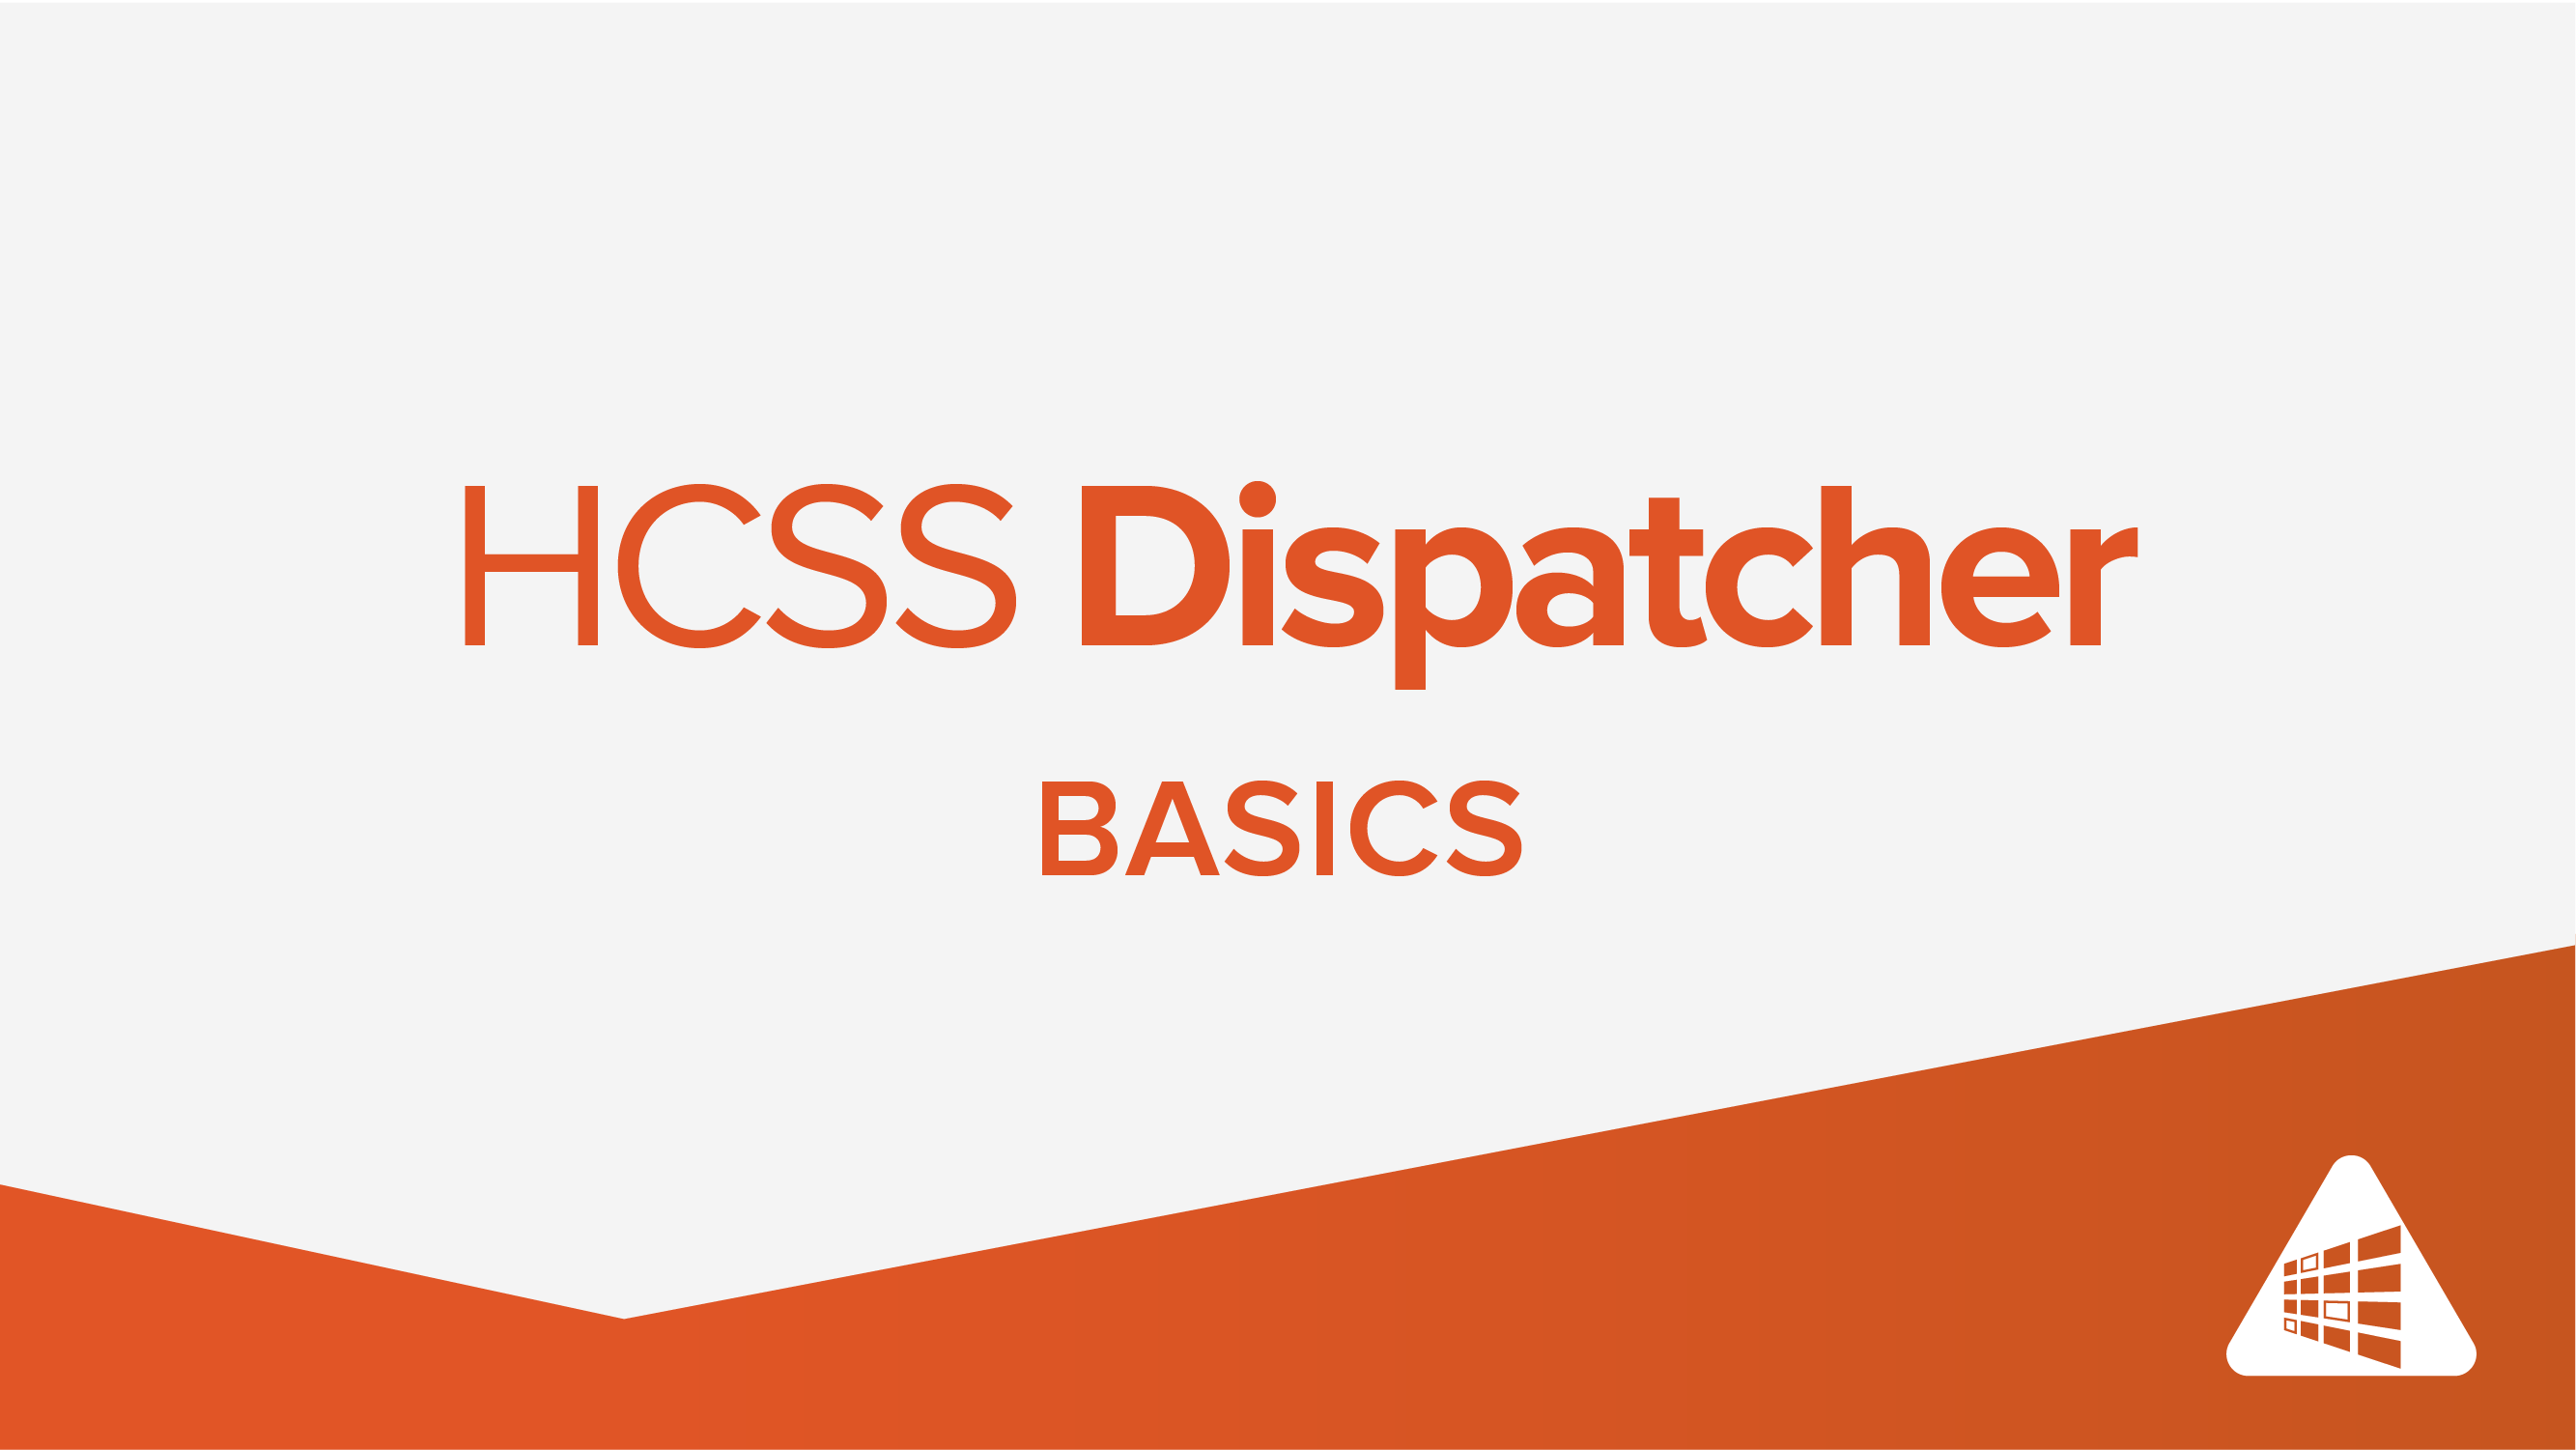 Implementation for HCSS Dispatcher Users